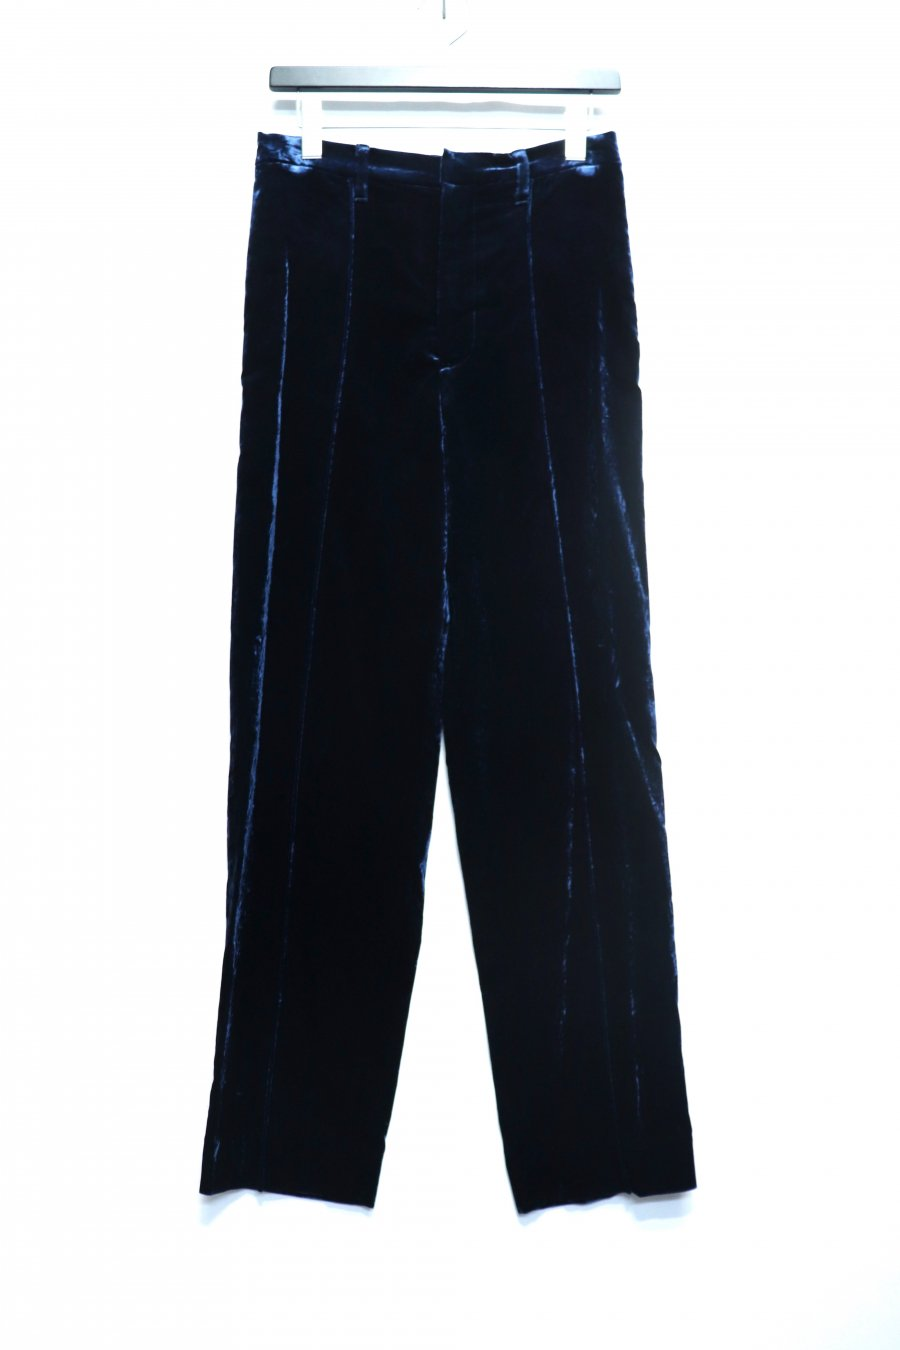 JOHN MASON SMITH  VELOUR EASY SLACKS(MIDNIGHT BLUE)<img class='new_mark_img2' src='https://img.shop-pro.jp/img/new/icons15.gif' style='border:none;display:inline;margin:0px;padding:0px;width:auto;' />